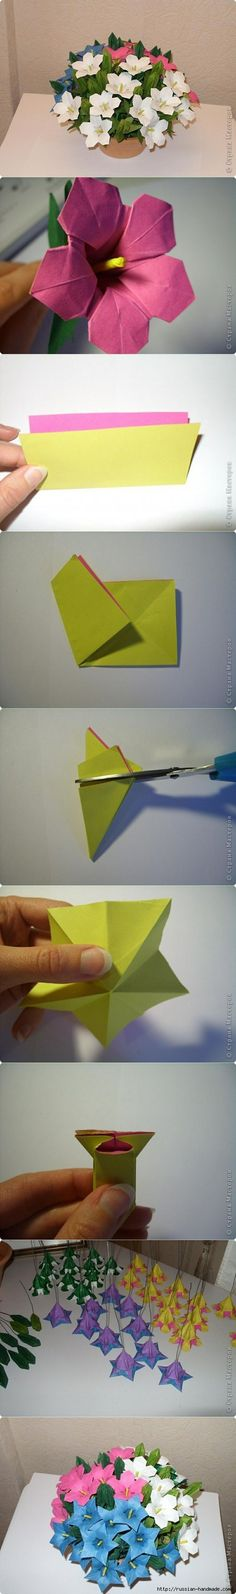 DIY Beautiful Paper Origami: